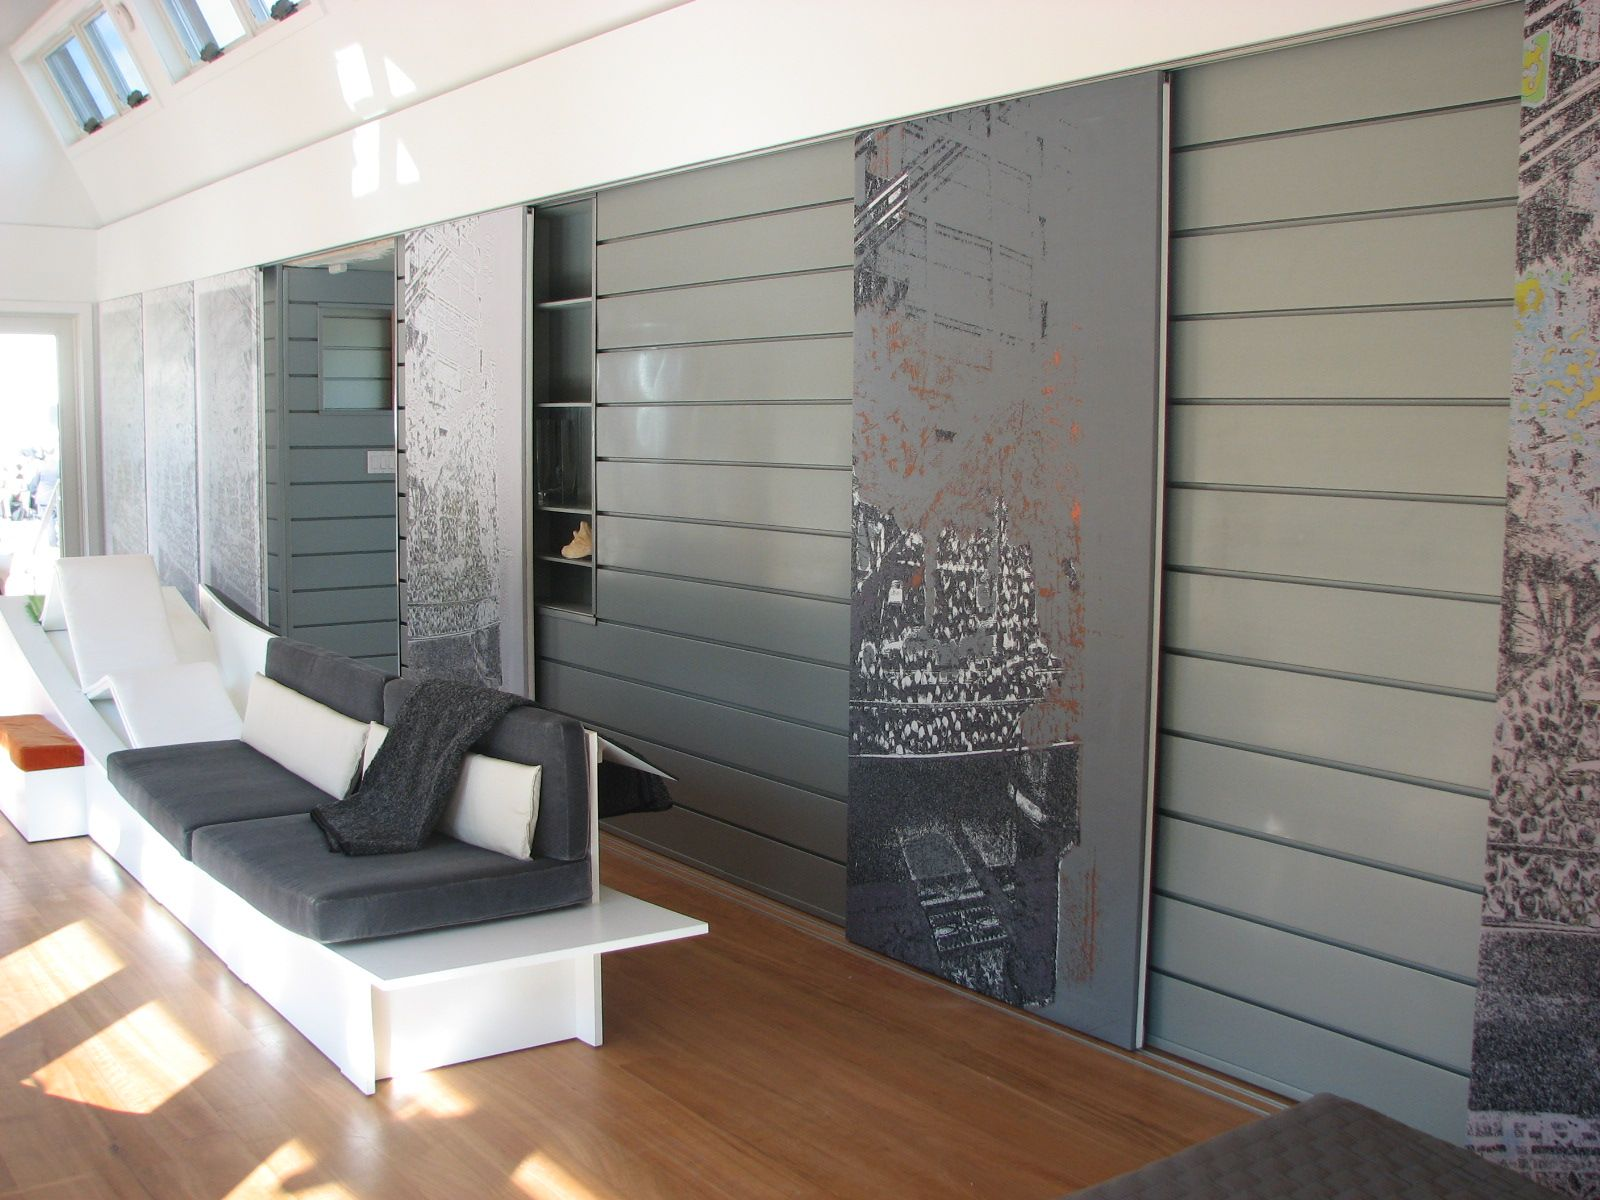 Decorative Interior Wall Paneling interior wall reveal panels, preweathered zinc, zinc facade system